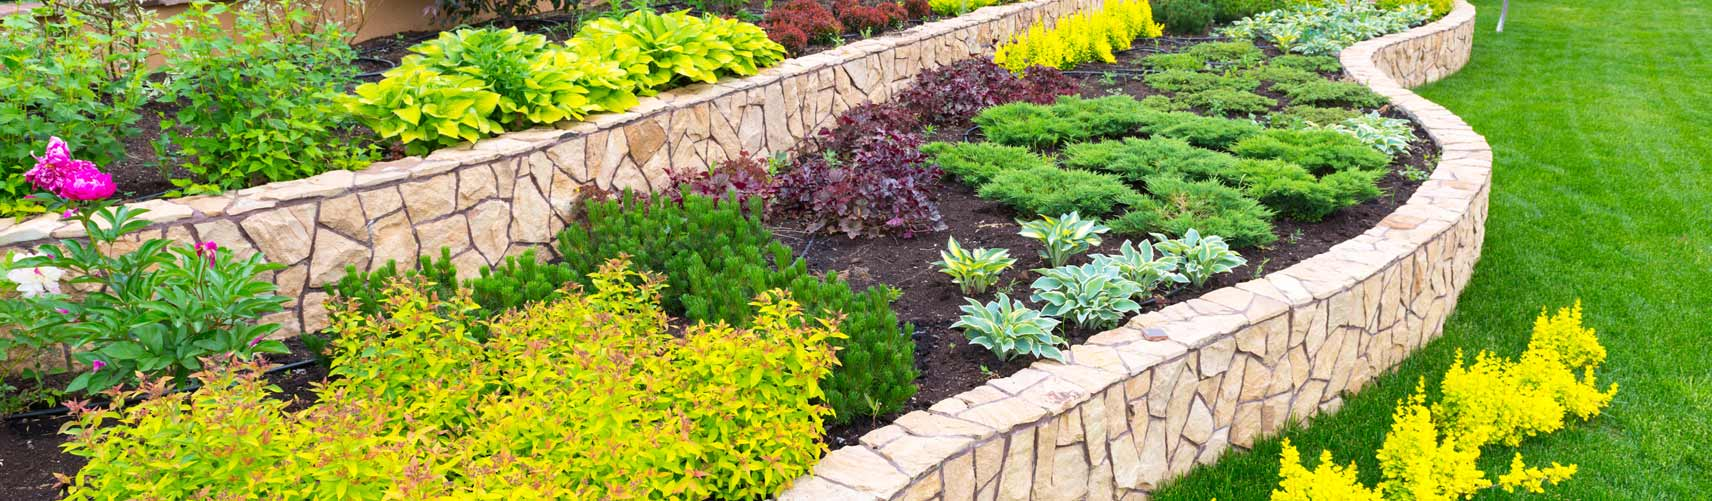 Milwaukee Landscaping Company, Landscaper and Landscaping Services